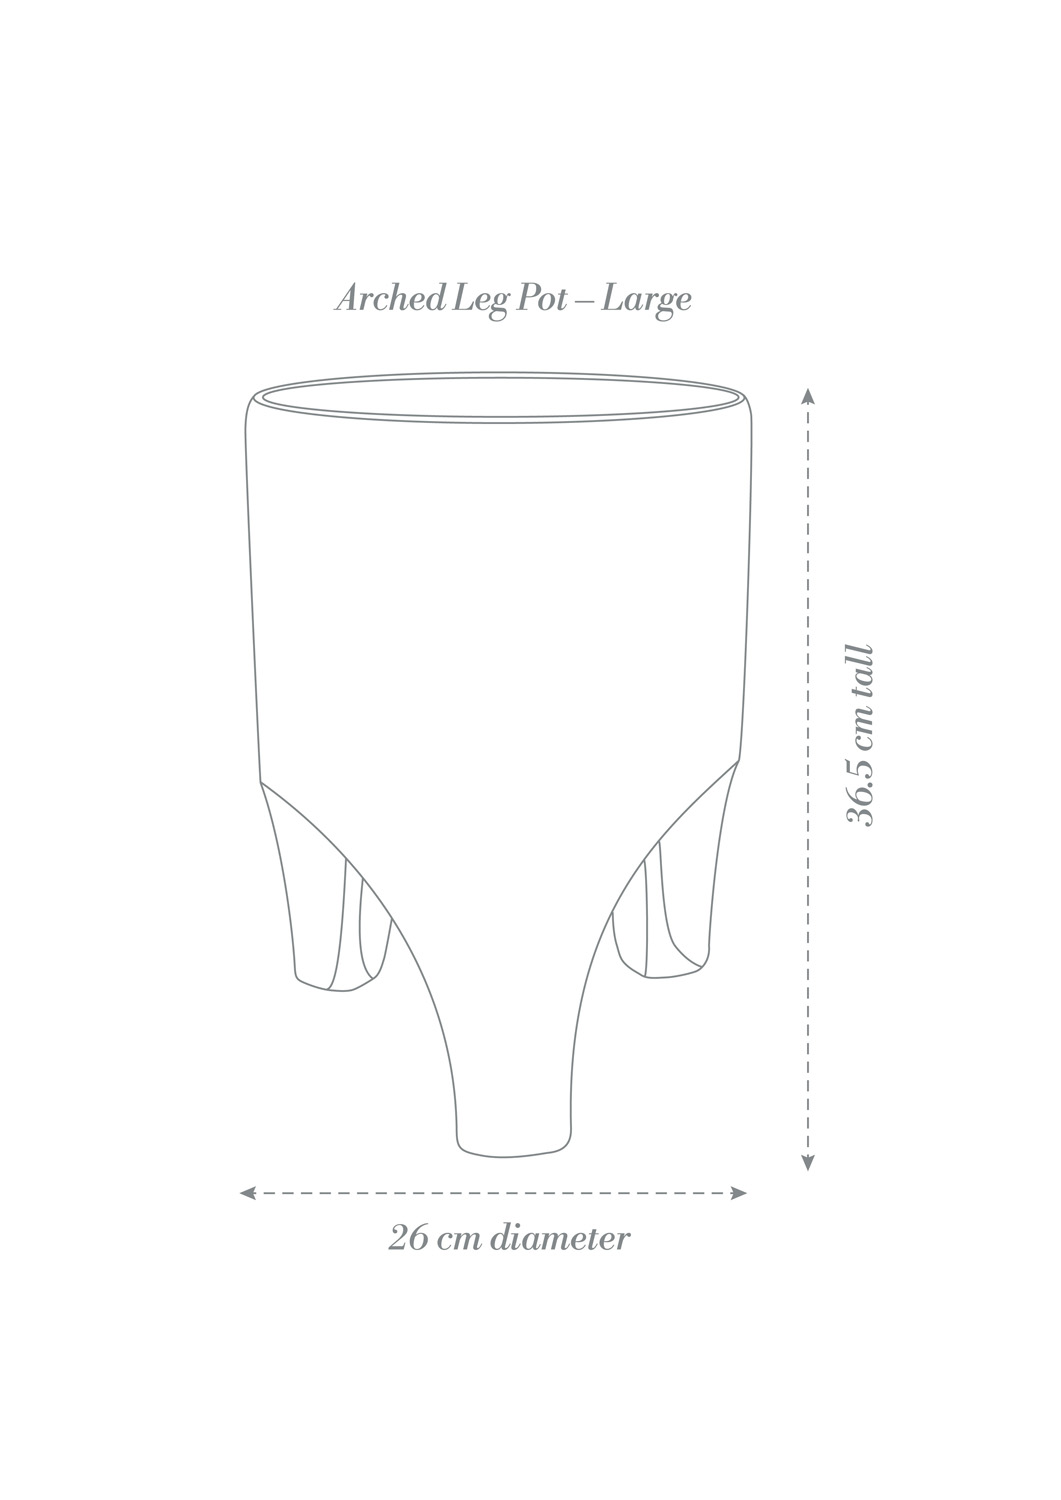 Arched Leg Pot Large Product Diagram B